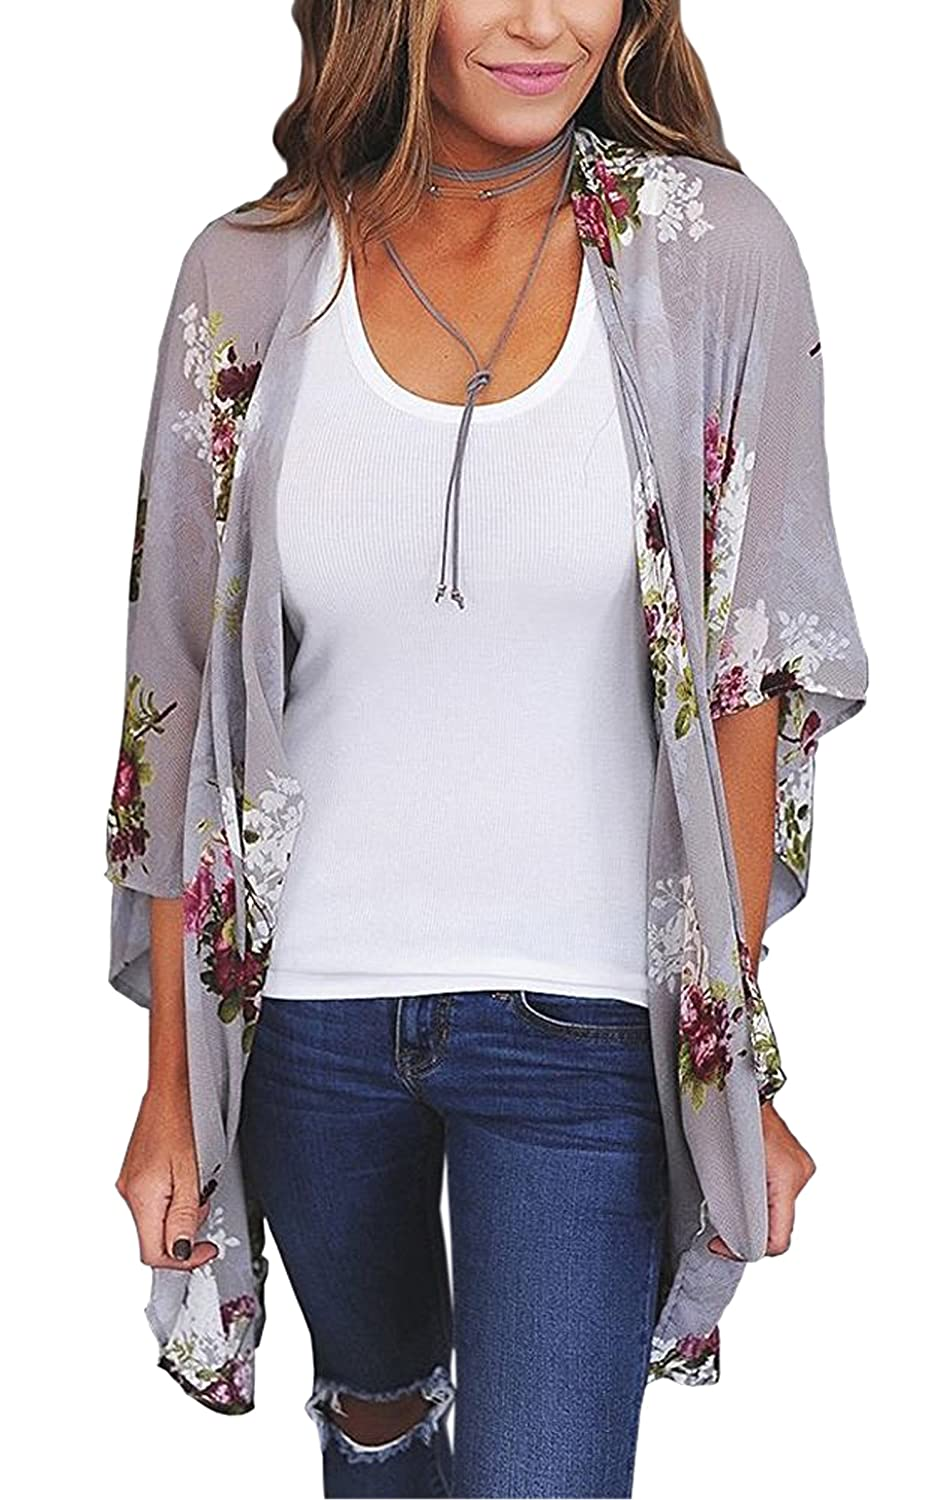 9548c8d2 ECOWISH Womens Floral Print Loose Puff Sleeve Kimono Cardigan Lace  Patchwork Cover Up Blouse at Amazon Women's Clothing store: